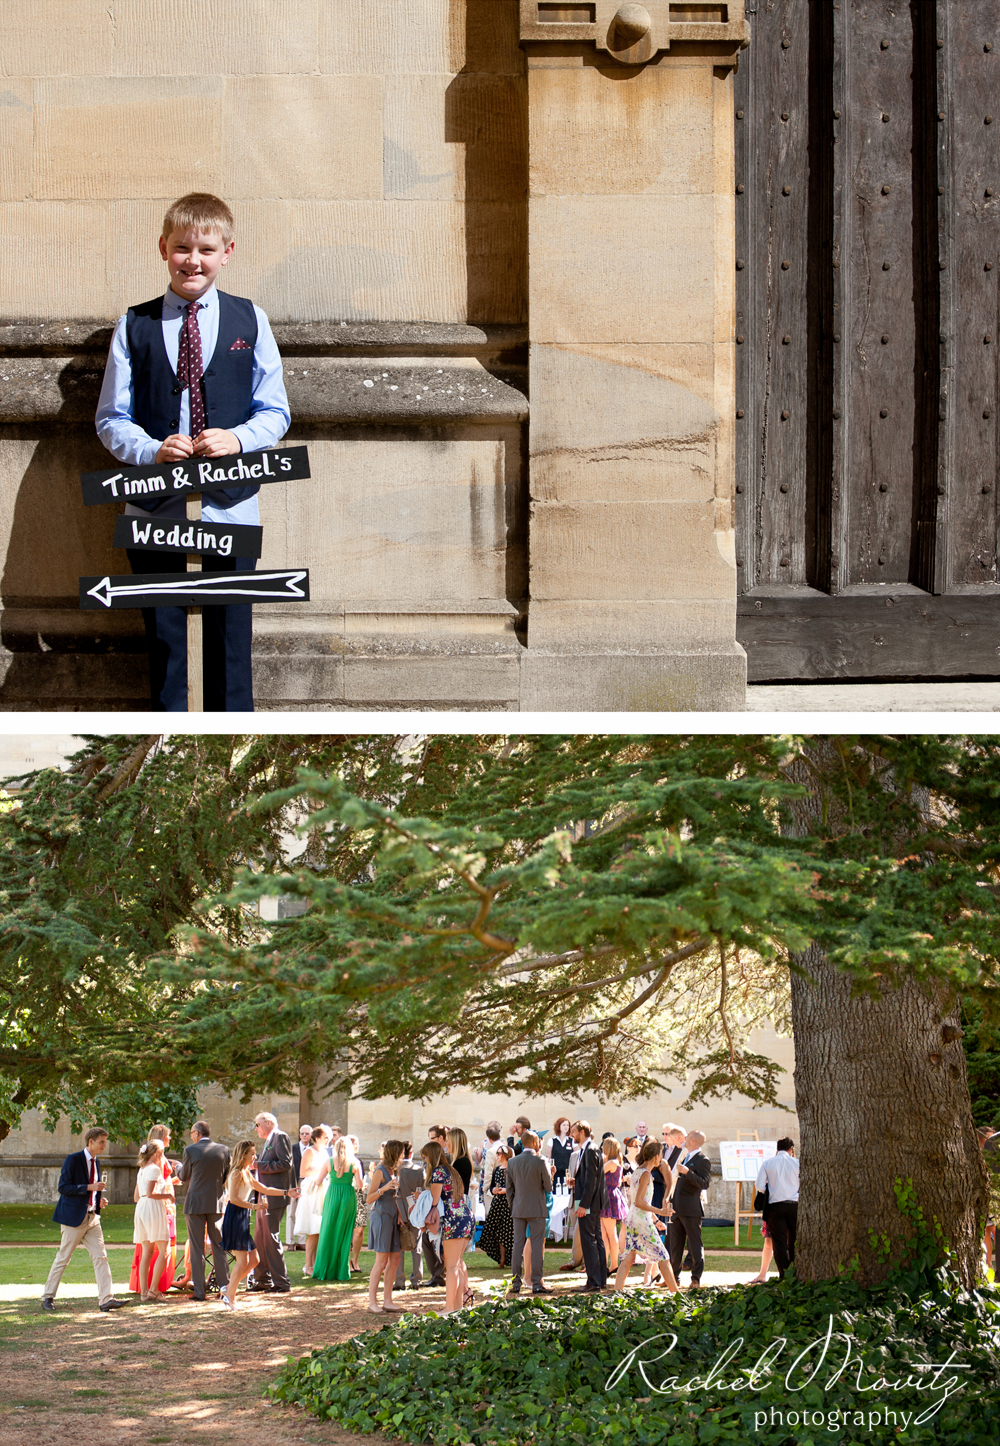 rachel and timms tandem bicycle themed wedding in oxford